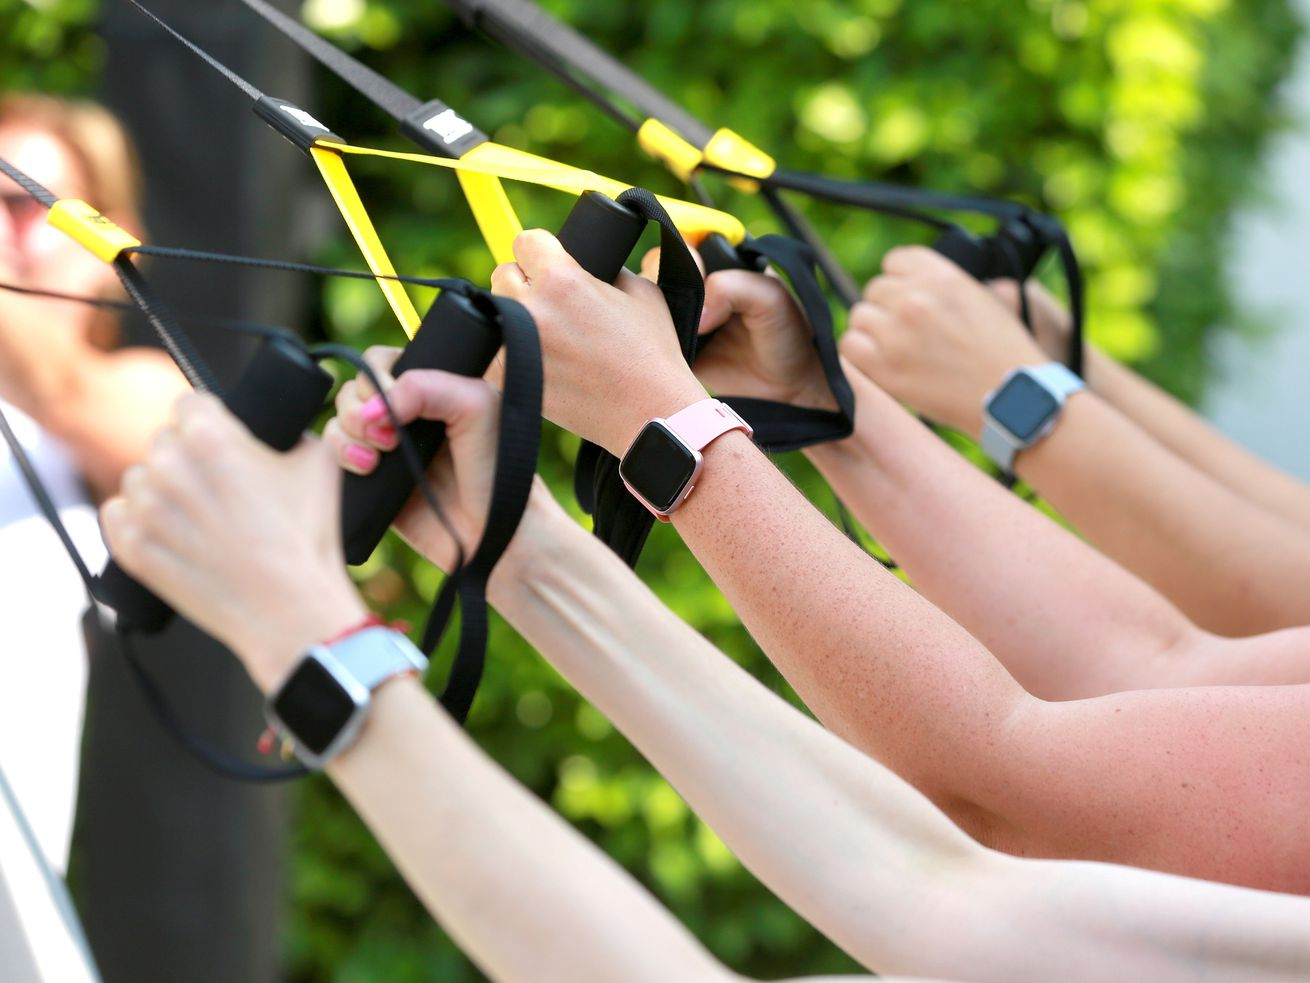 People exercising while wearing Fitbits.